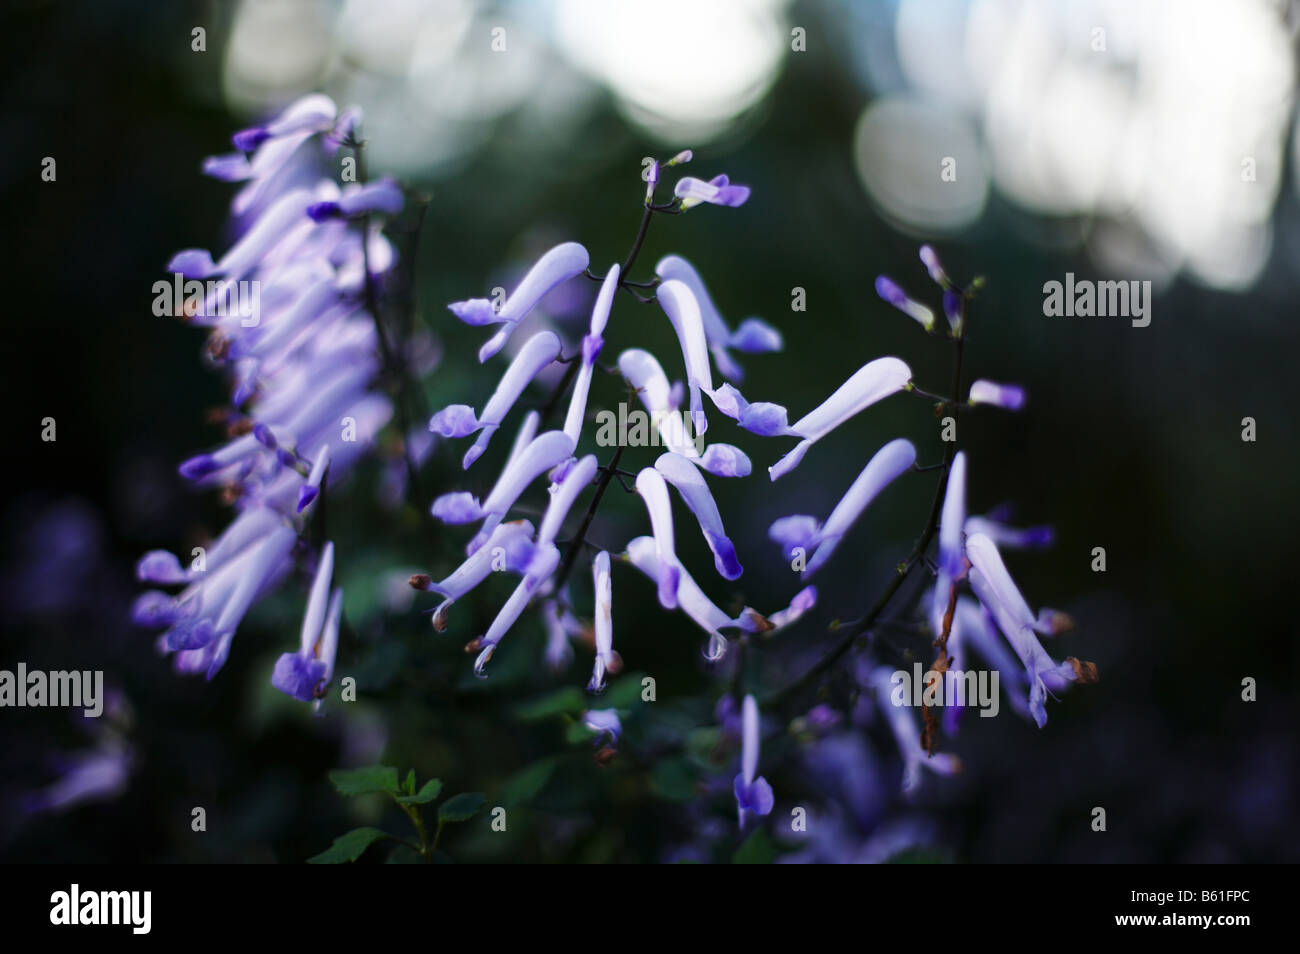 Bluebell flowers inside the Temperate House in Kew Gardens London England UK - Stock Image